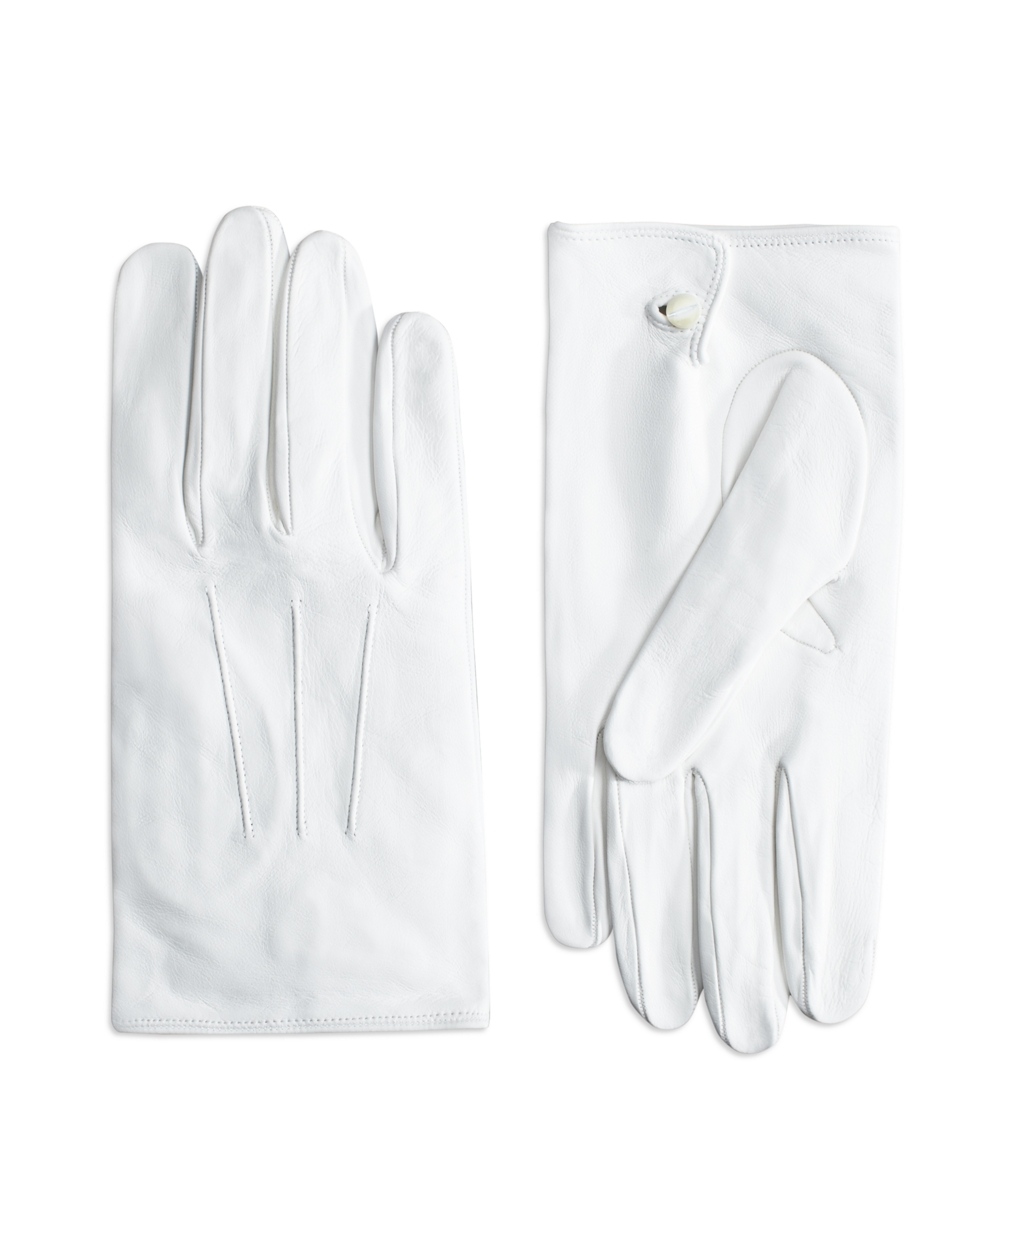 1950s Tuxedos and Men's Wedding Suits Brooks Brothers Mens White Formal Gloves $148.00 AT vintagedancer.com